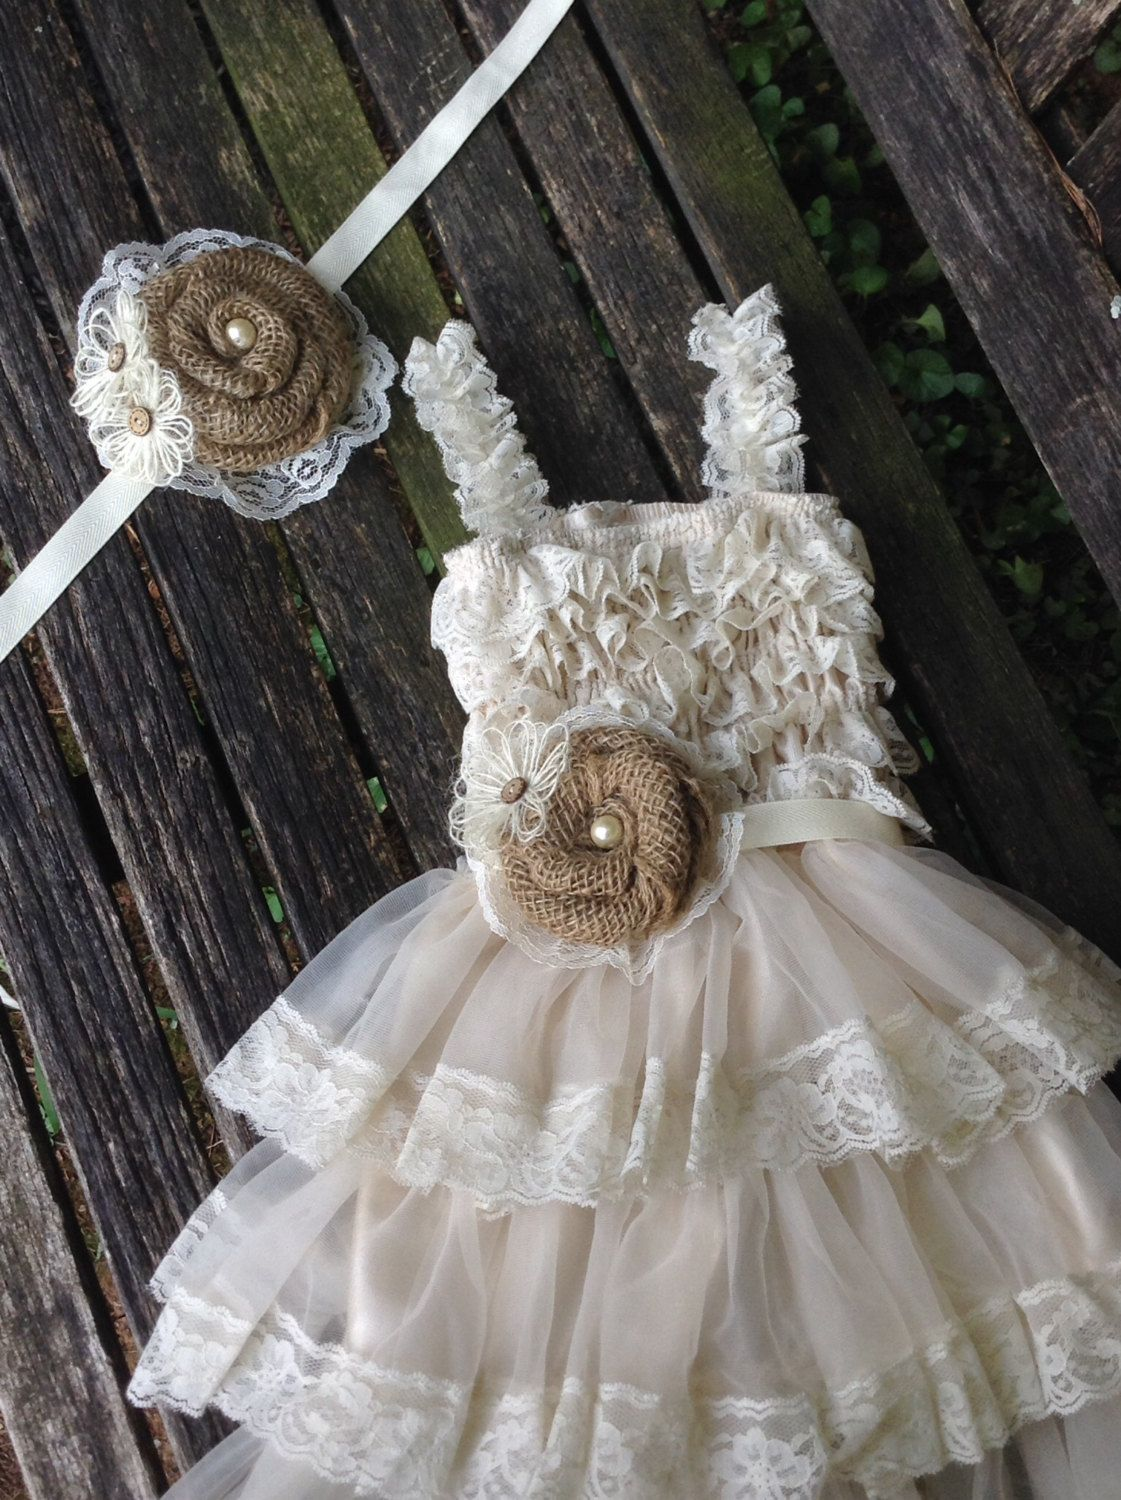 Rustic Flower Girl Dress / Burlap and Lace Shabby Chic Flower Girl ...